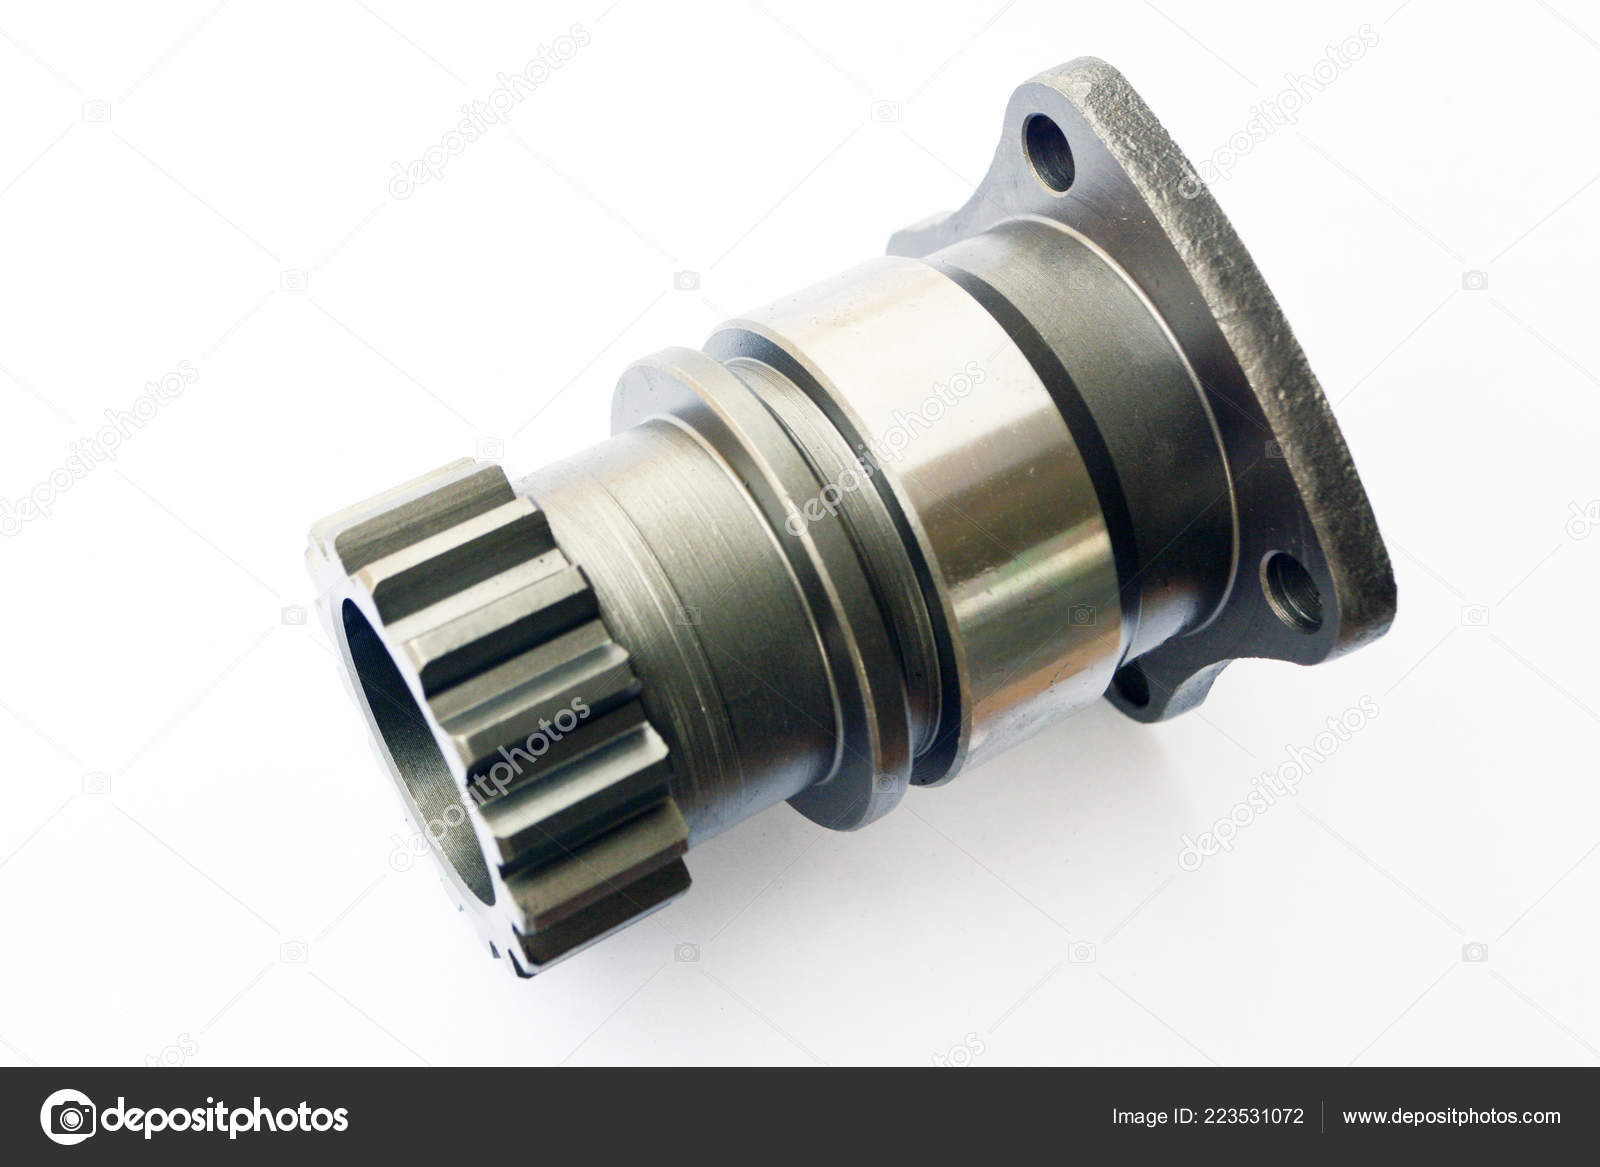 Tractor propeller shaft intermediate support — Stock Photo